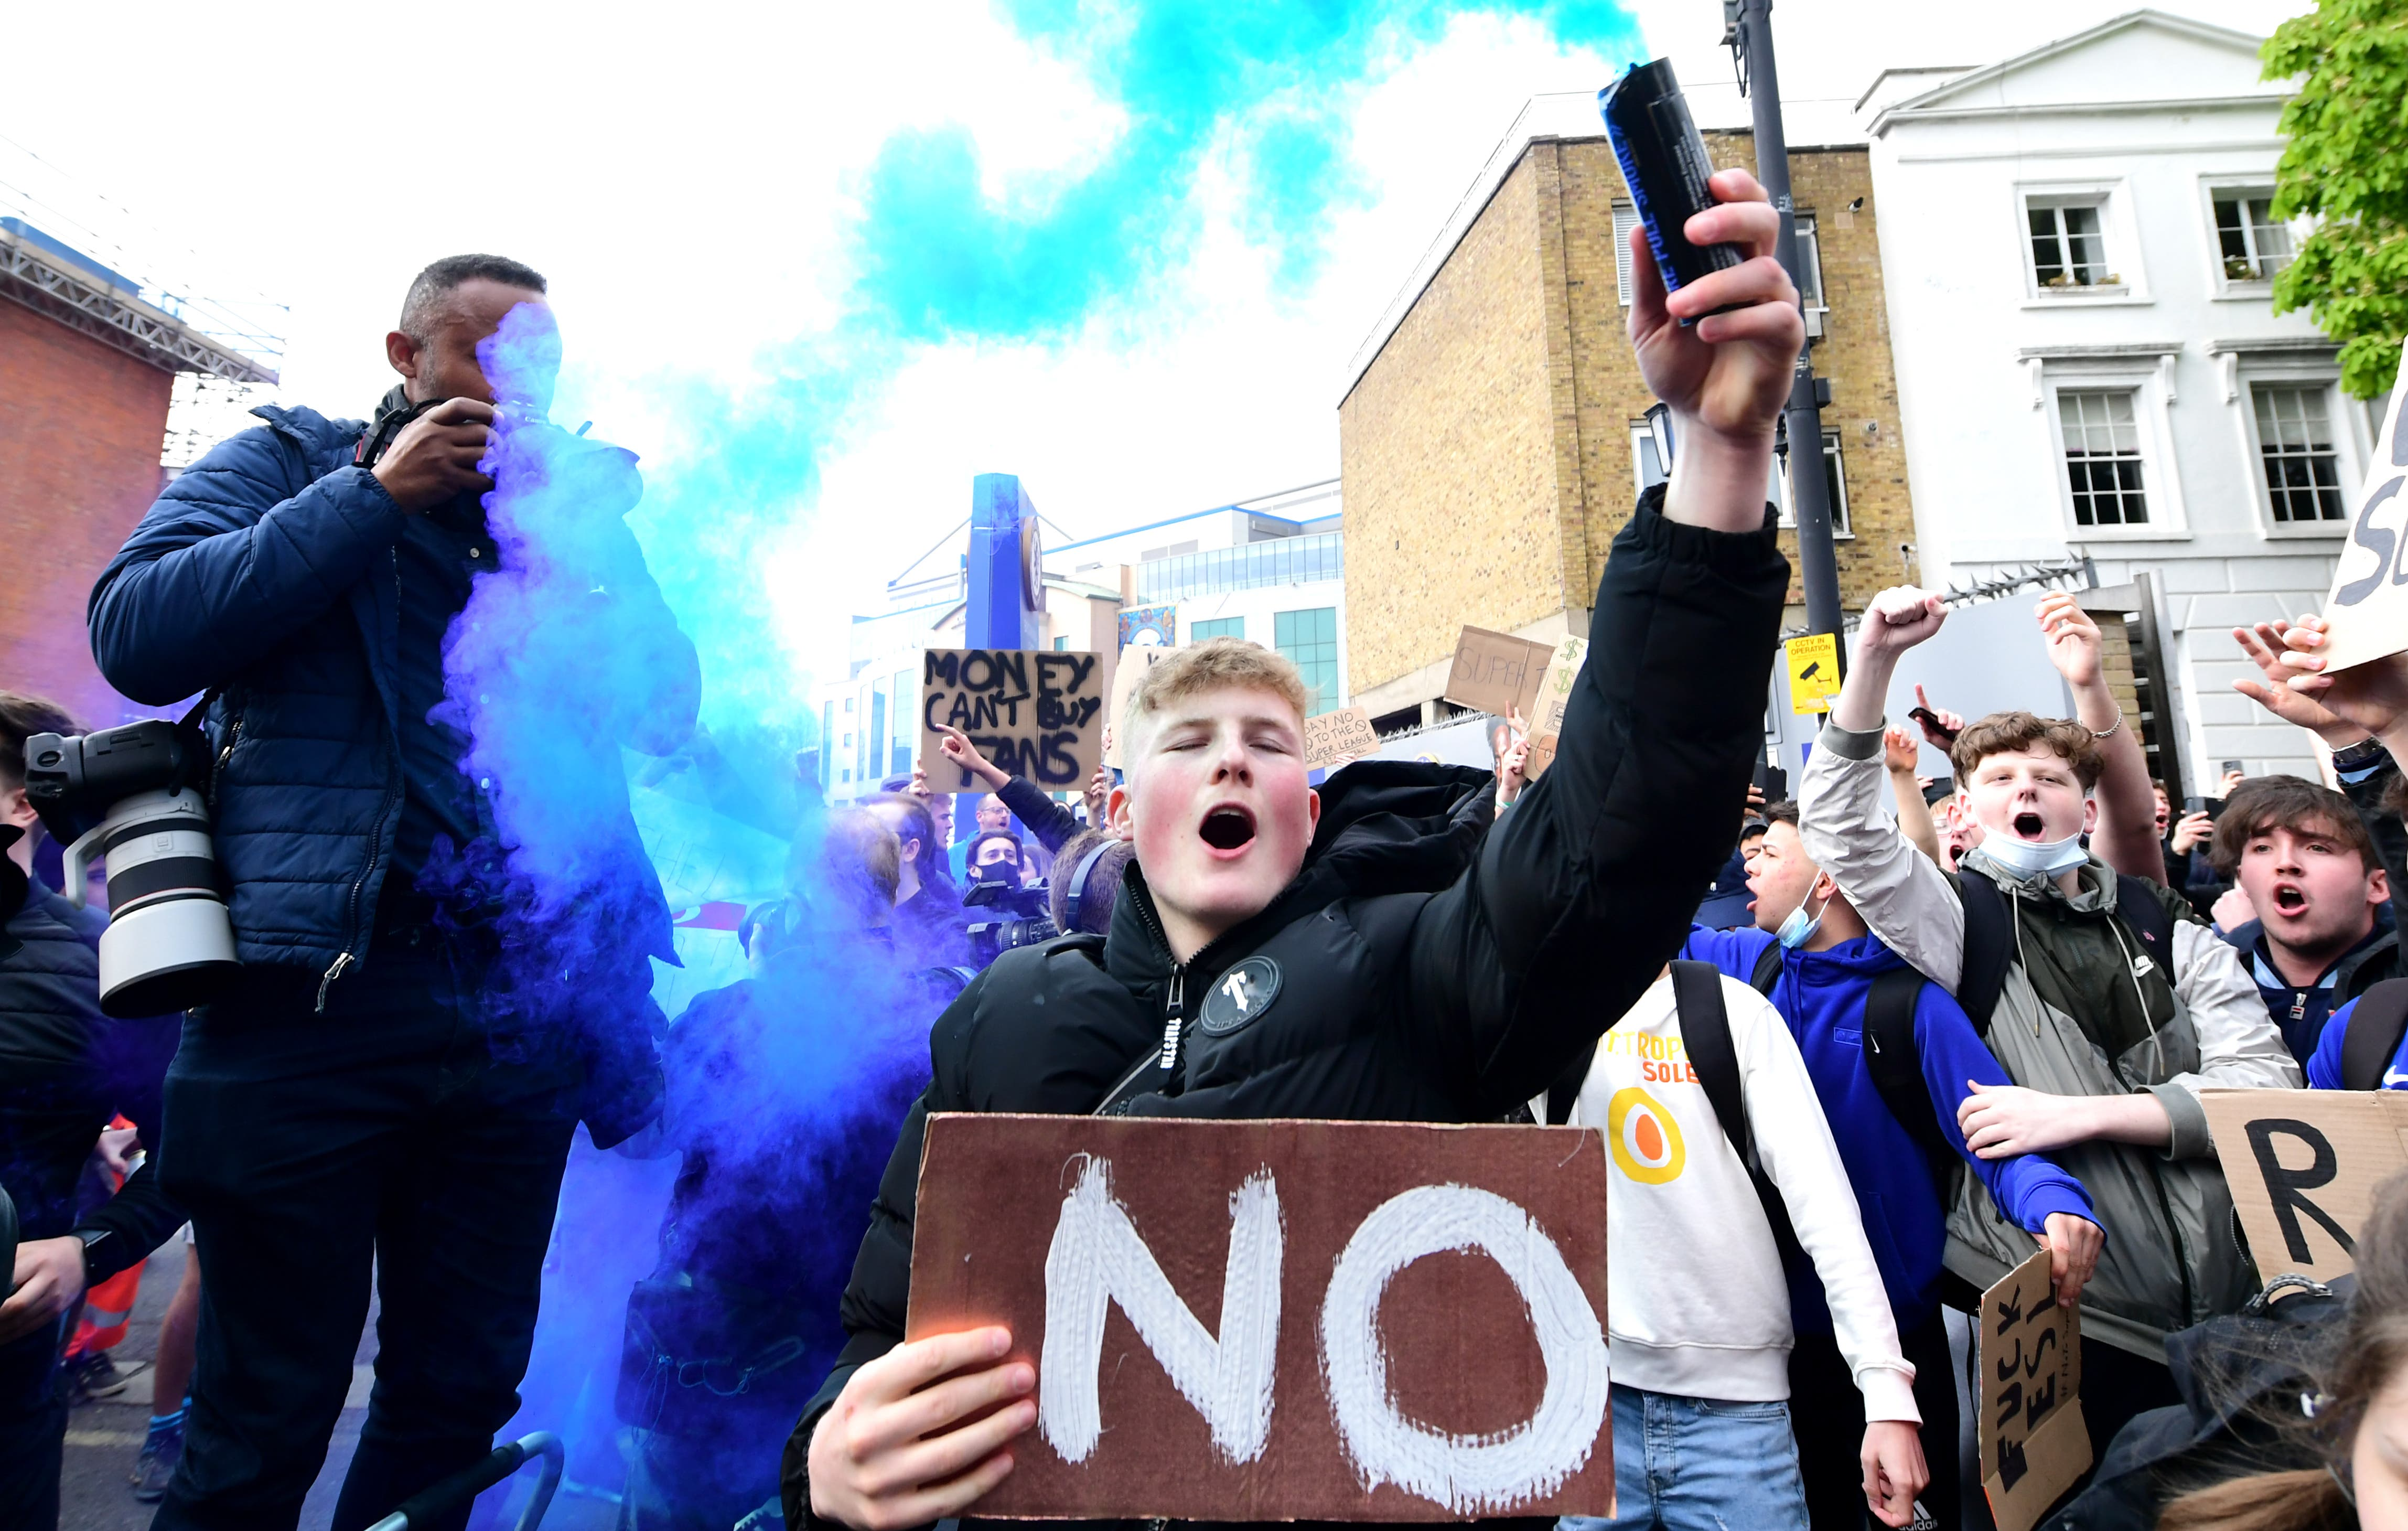 Chelsea fans outside Stamford Bridge protest against the club's involvement in the proposed European Super League